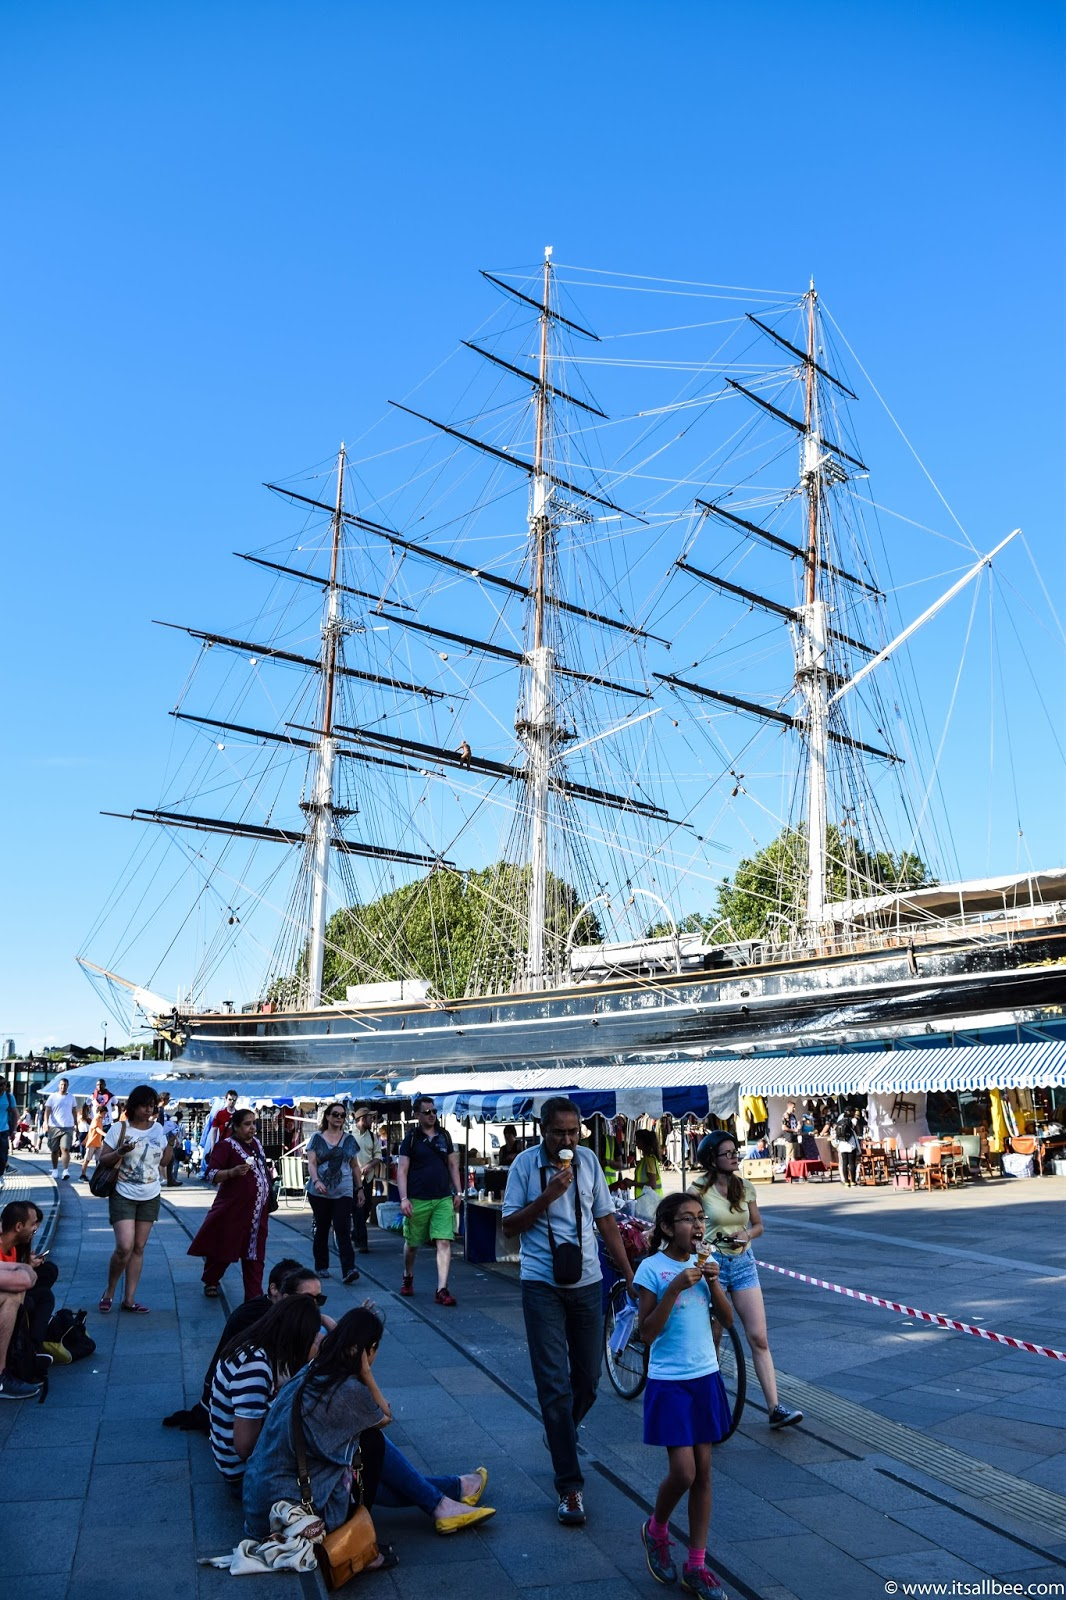 20 Of London's Unmissable Tourist Sights To Add To Your Itinerary Now | Cutty Sark London Greenwich